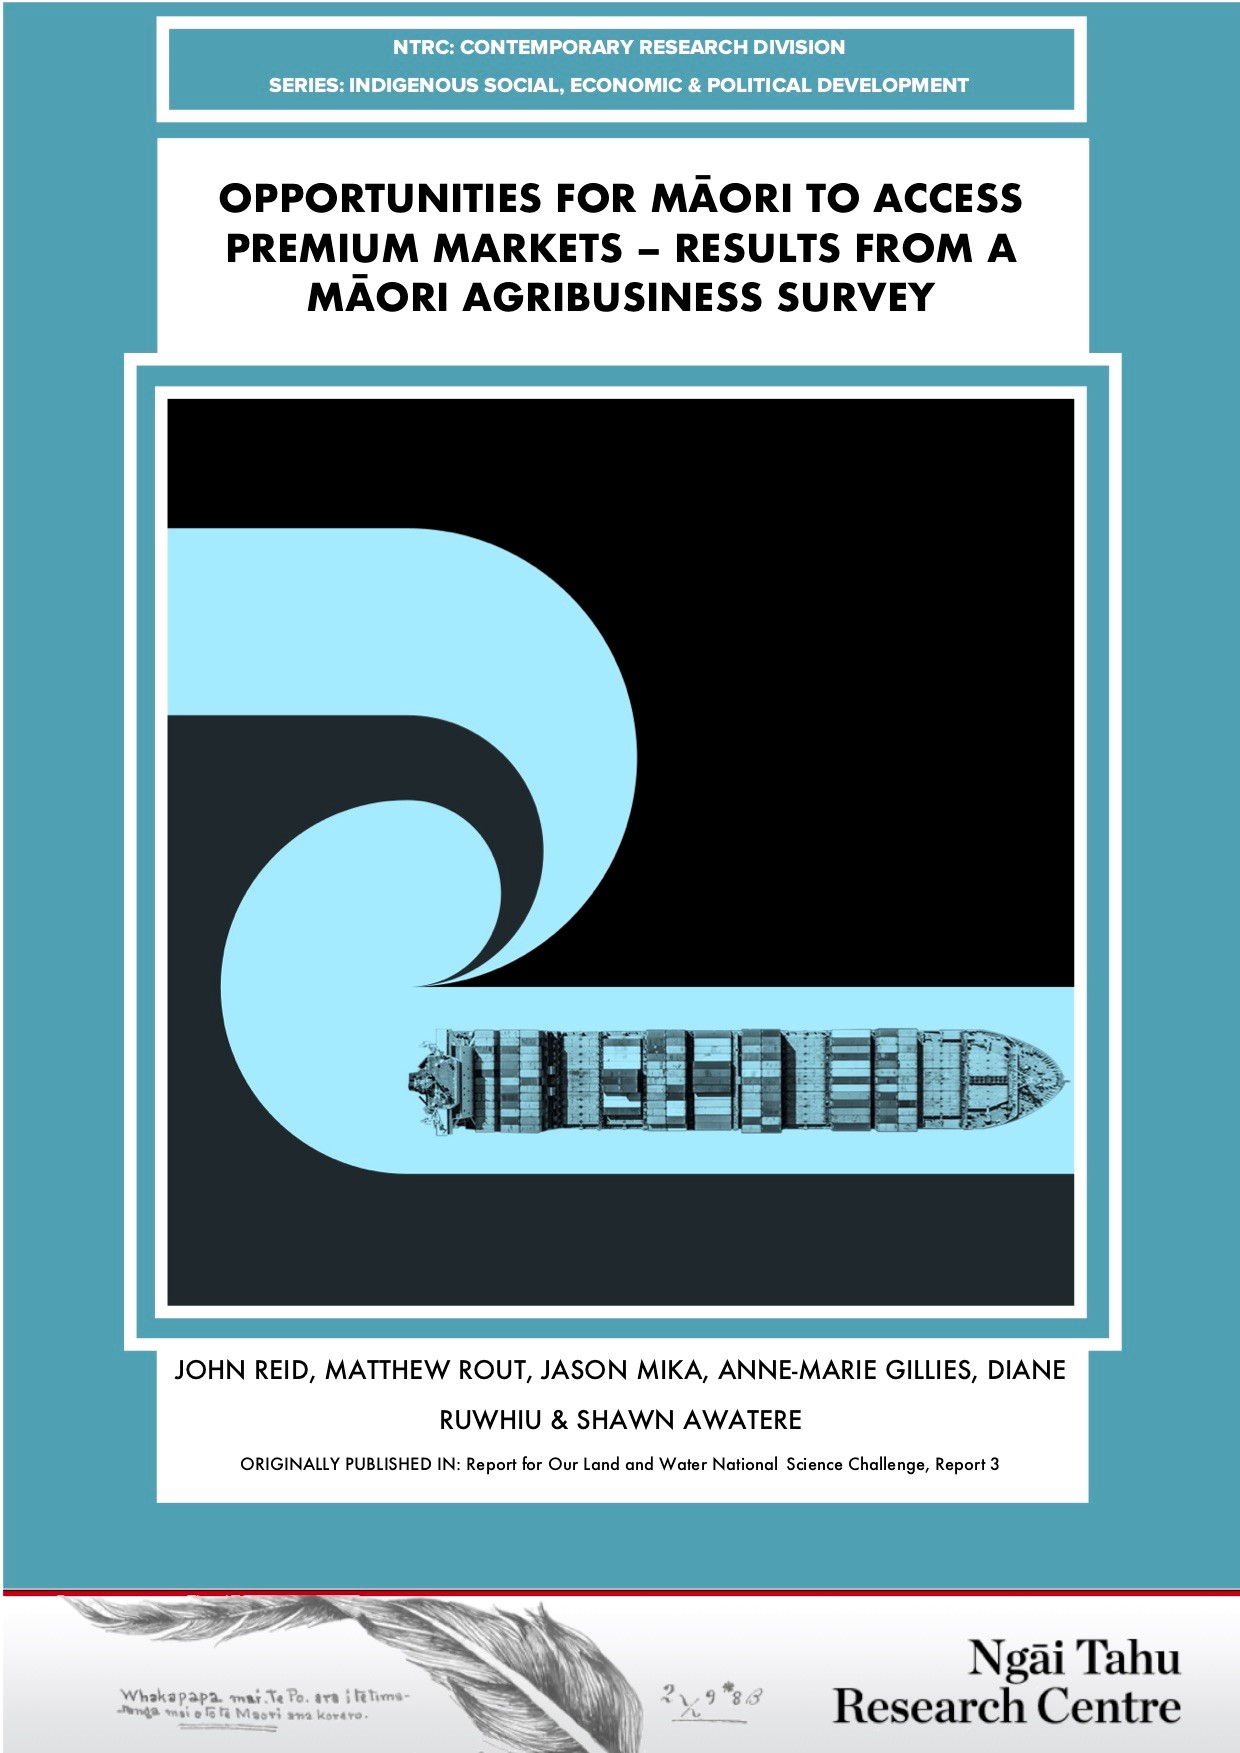 Opportunities for Māori to access premium markets - Results from a Māori agribus